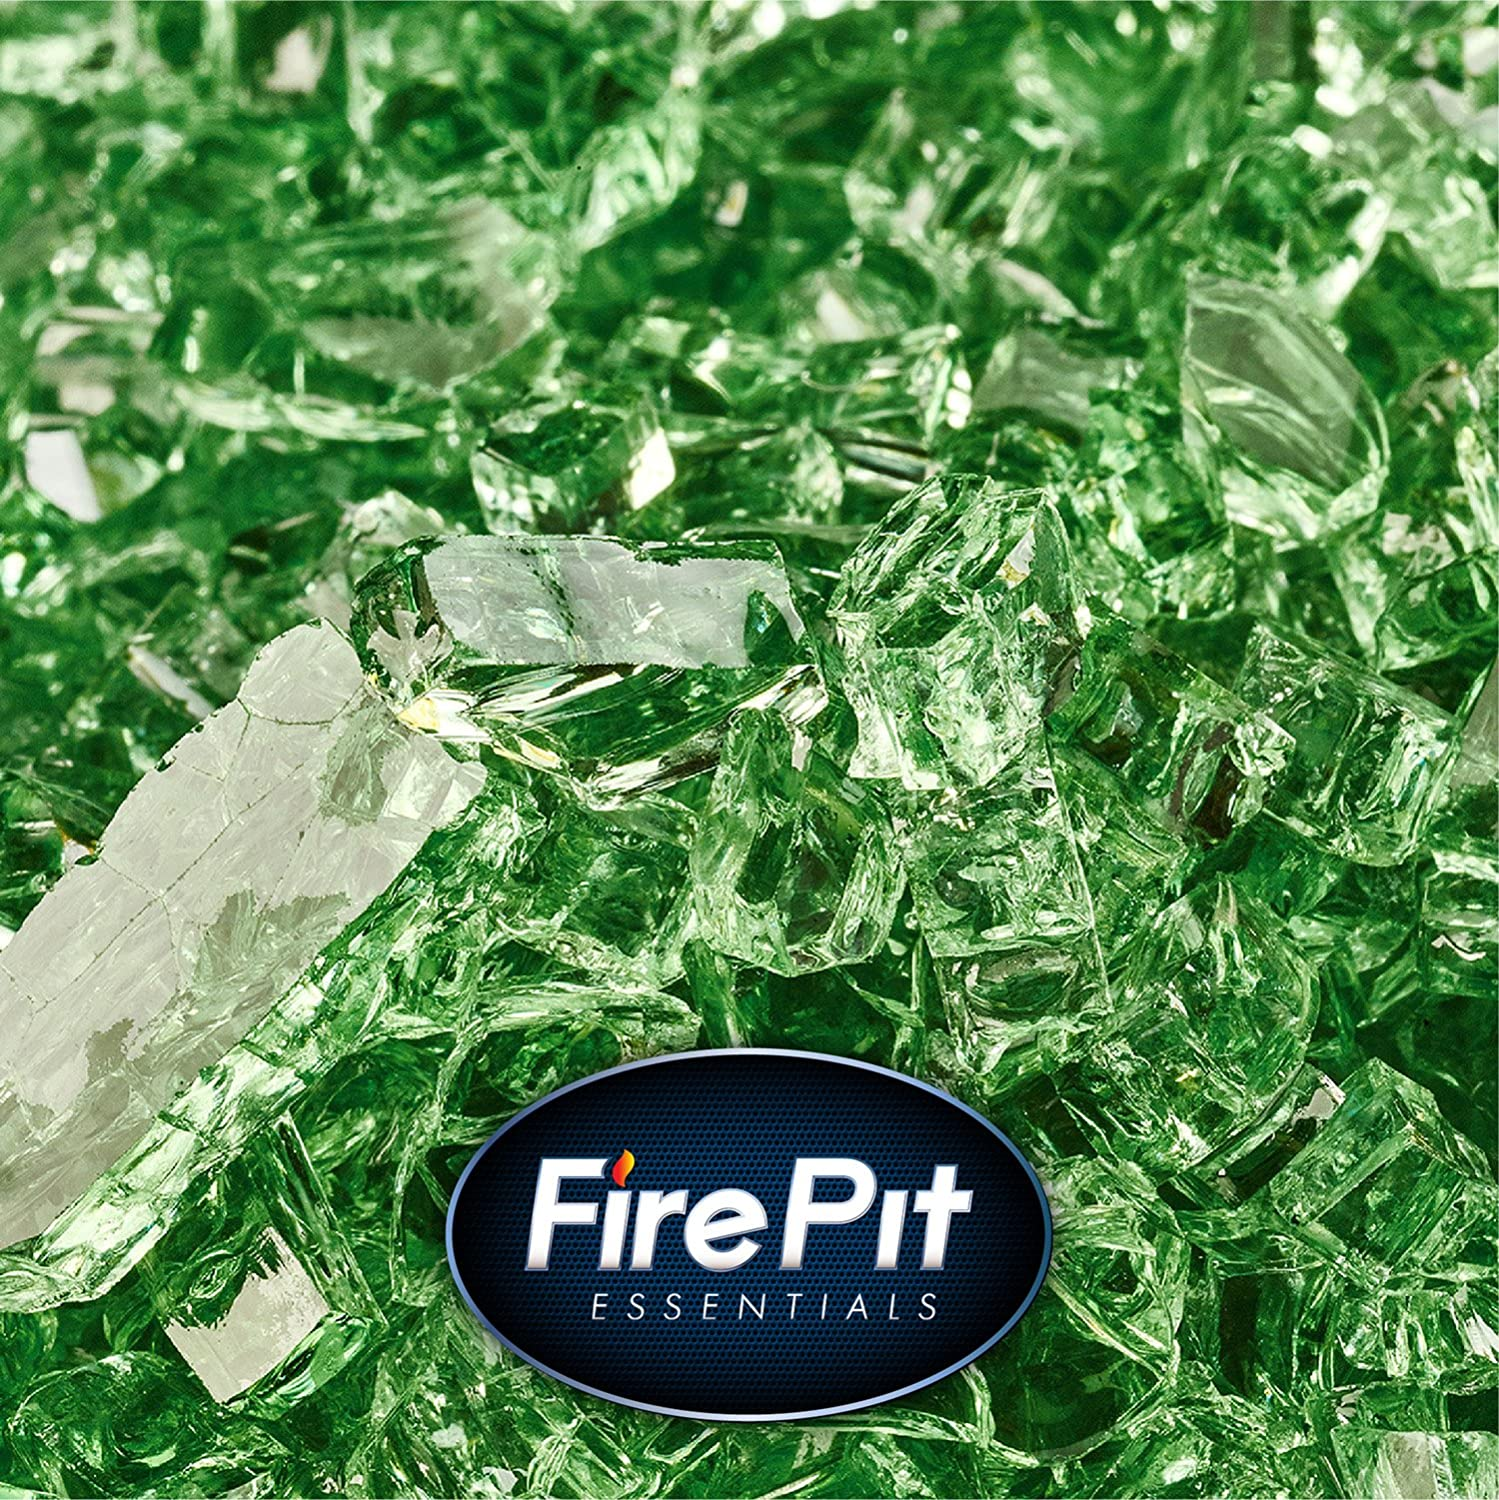 Citron - Fire Glass for Indoor and Outdoor Fire Pits or Fireplaces   10 Pounds   1/4 Inch, Reflective Fire Pit Essentials